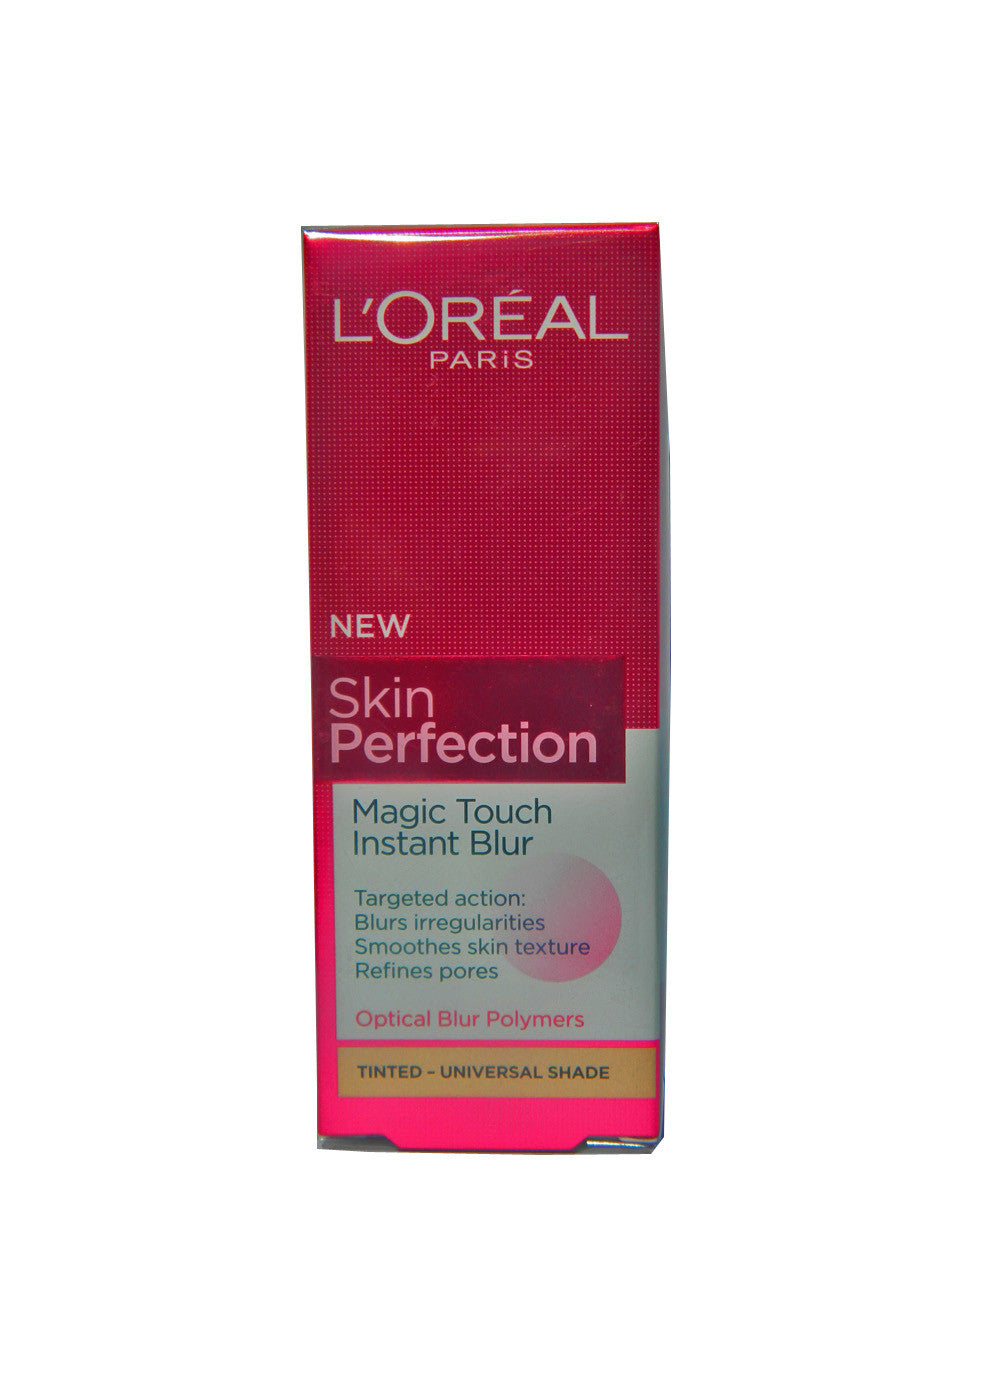 L'Oreal Skin Perfection Magic Touch Instant Blur 15 ml